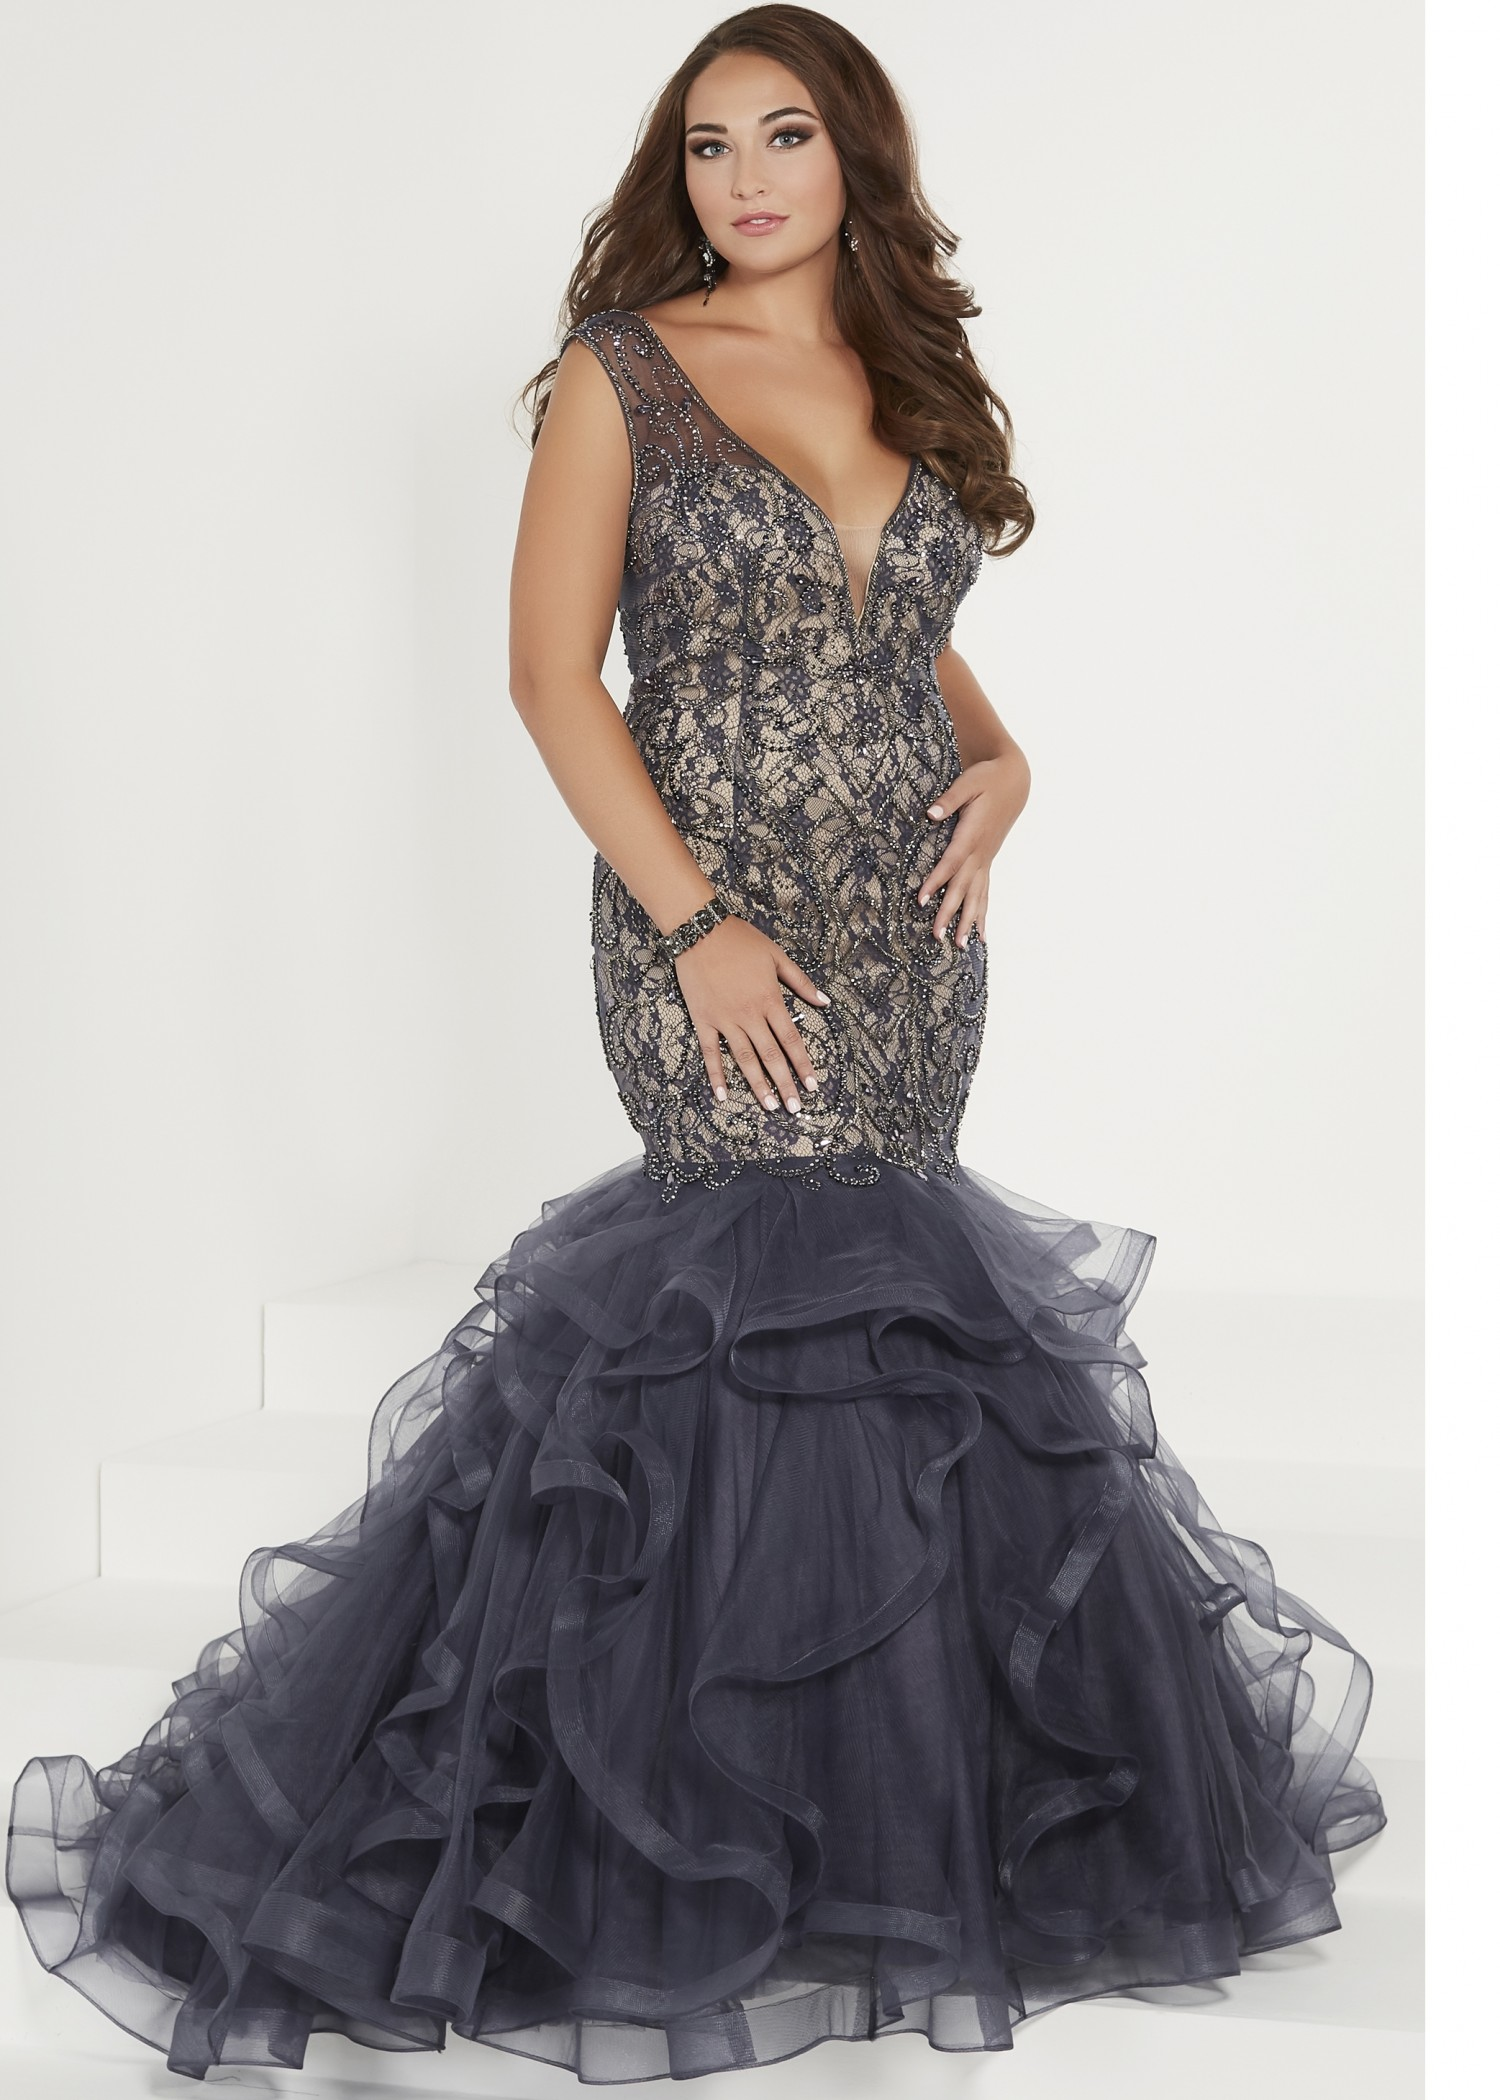 Tiffany Designs 16382 Open Back Mermaid Gown